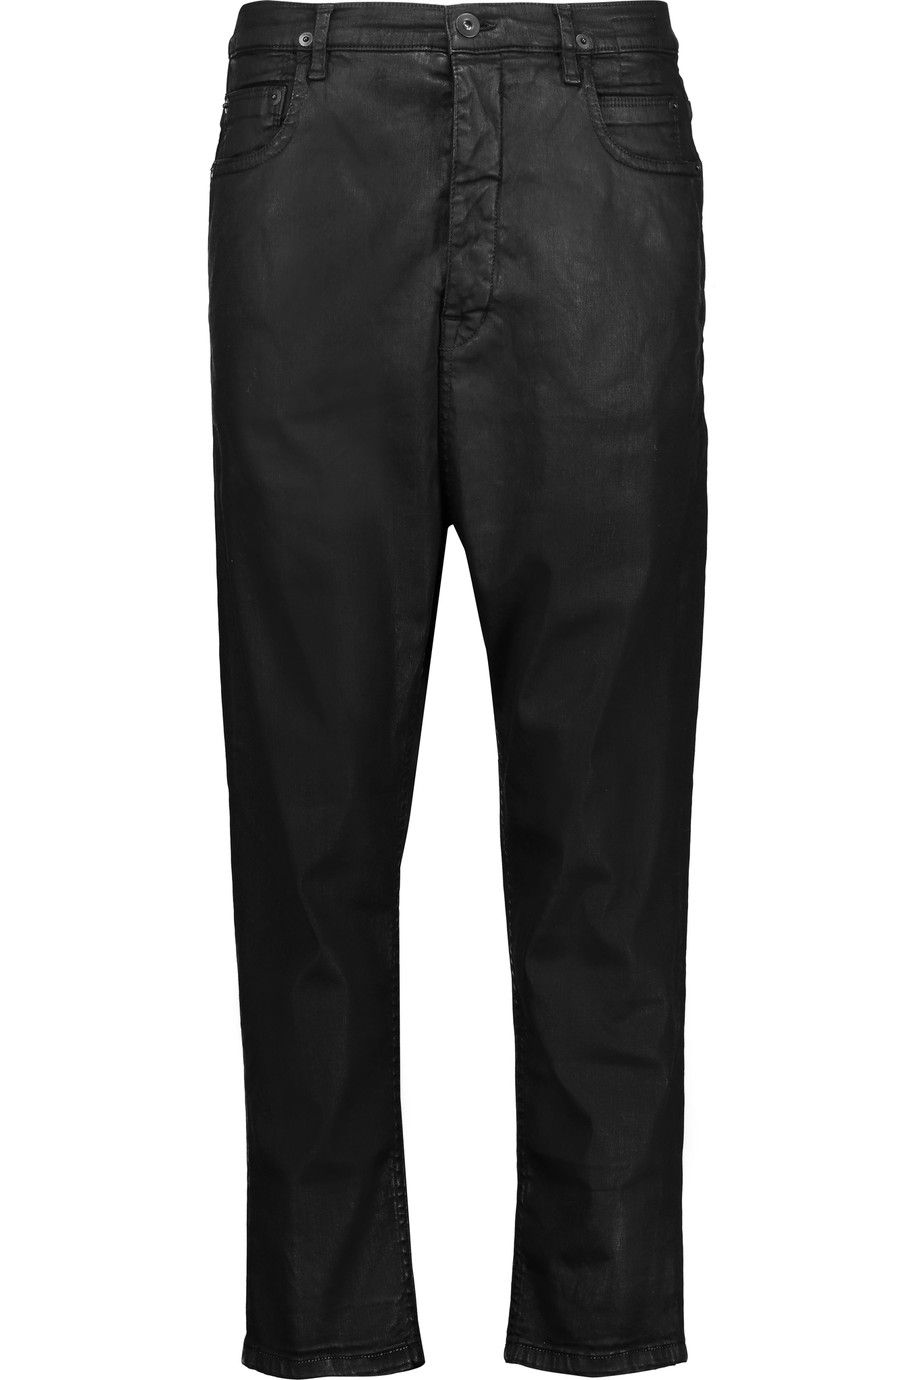 38b00b79404 RICK OWENS Dark Shadow Cropped Coated Jeans. #rickowens #cloth #jeans